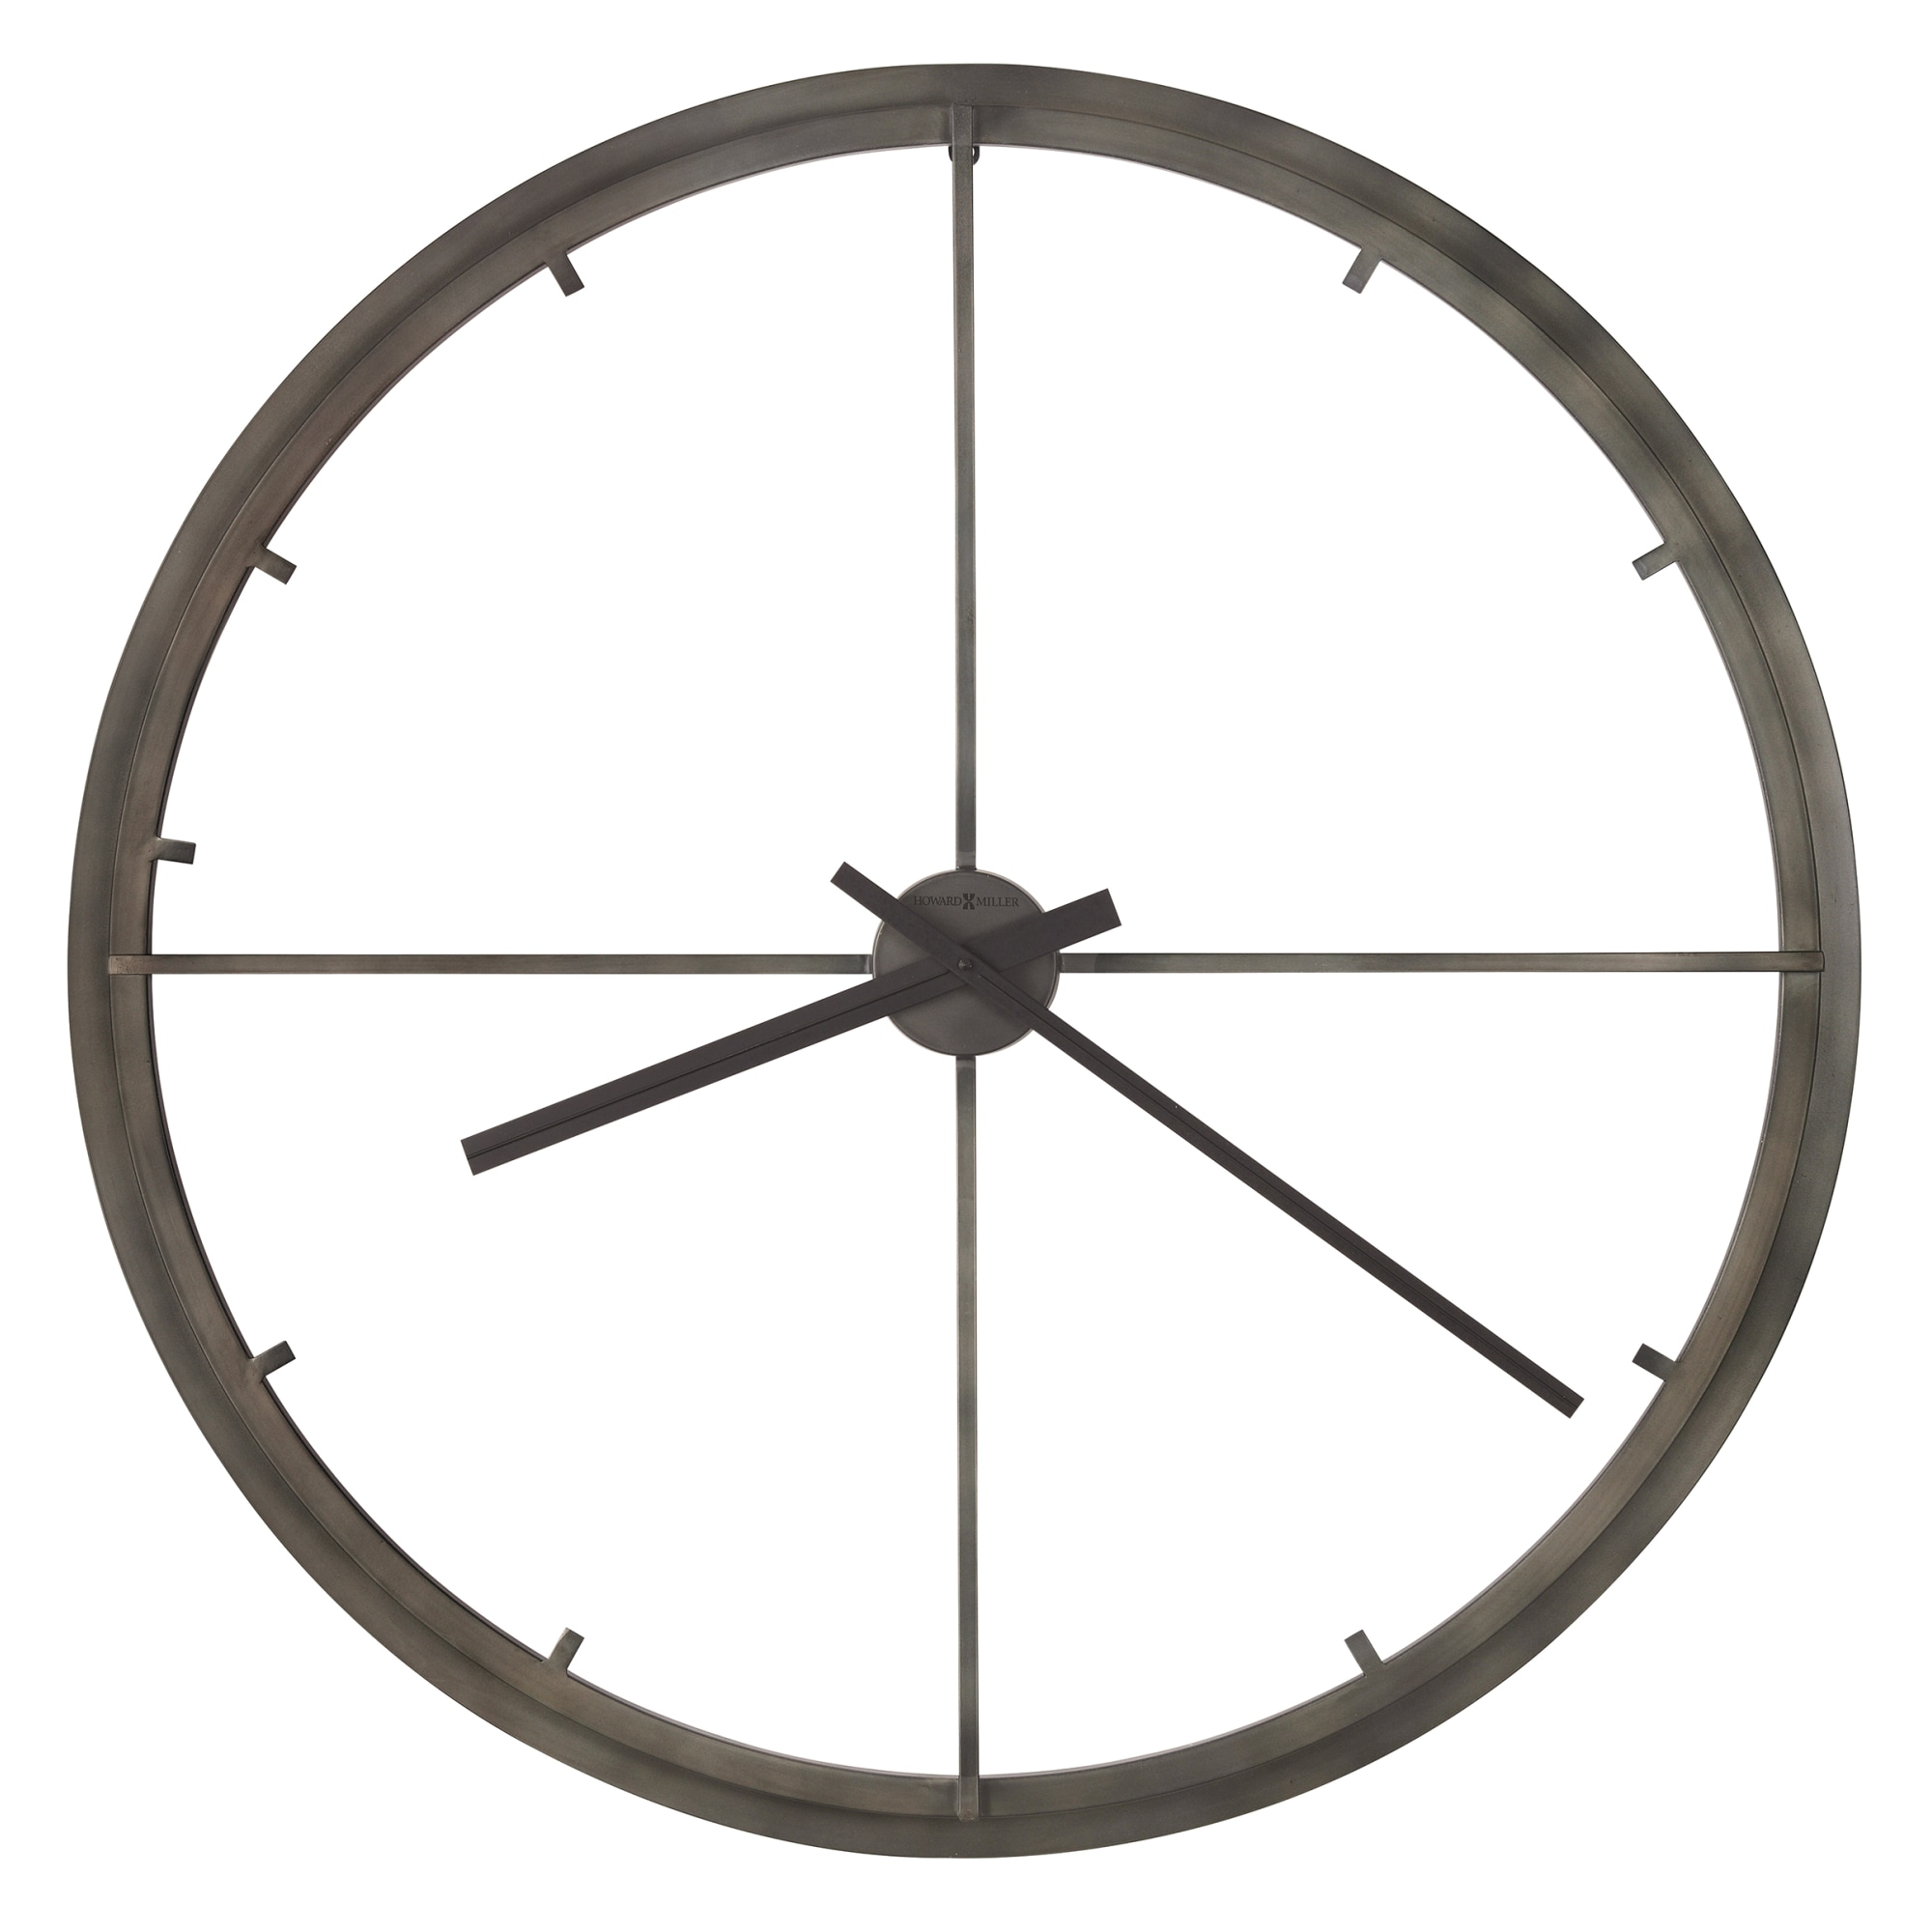 Image for 625-720 Girvan Gallery Wall Clock from Howard Miller Official Website